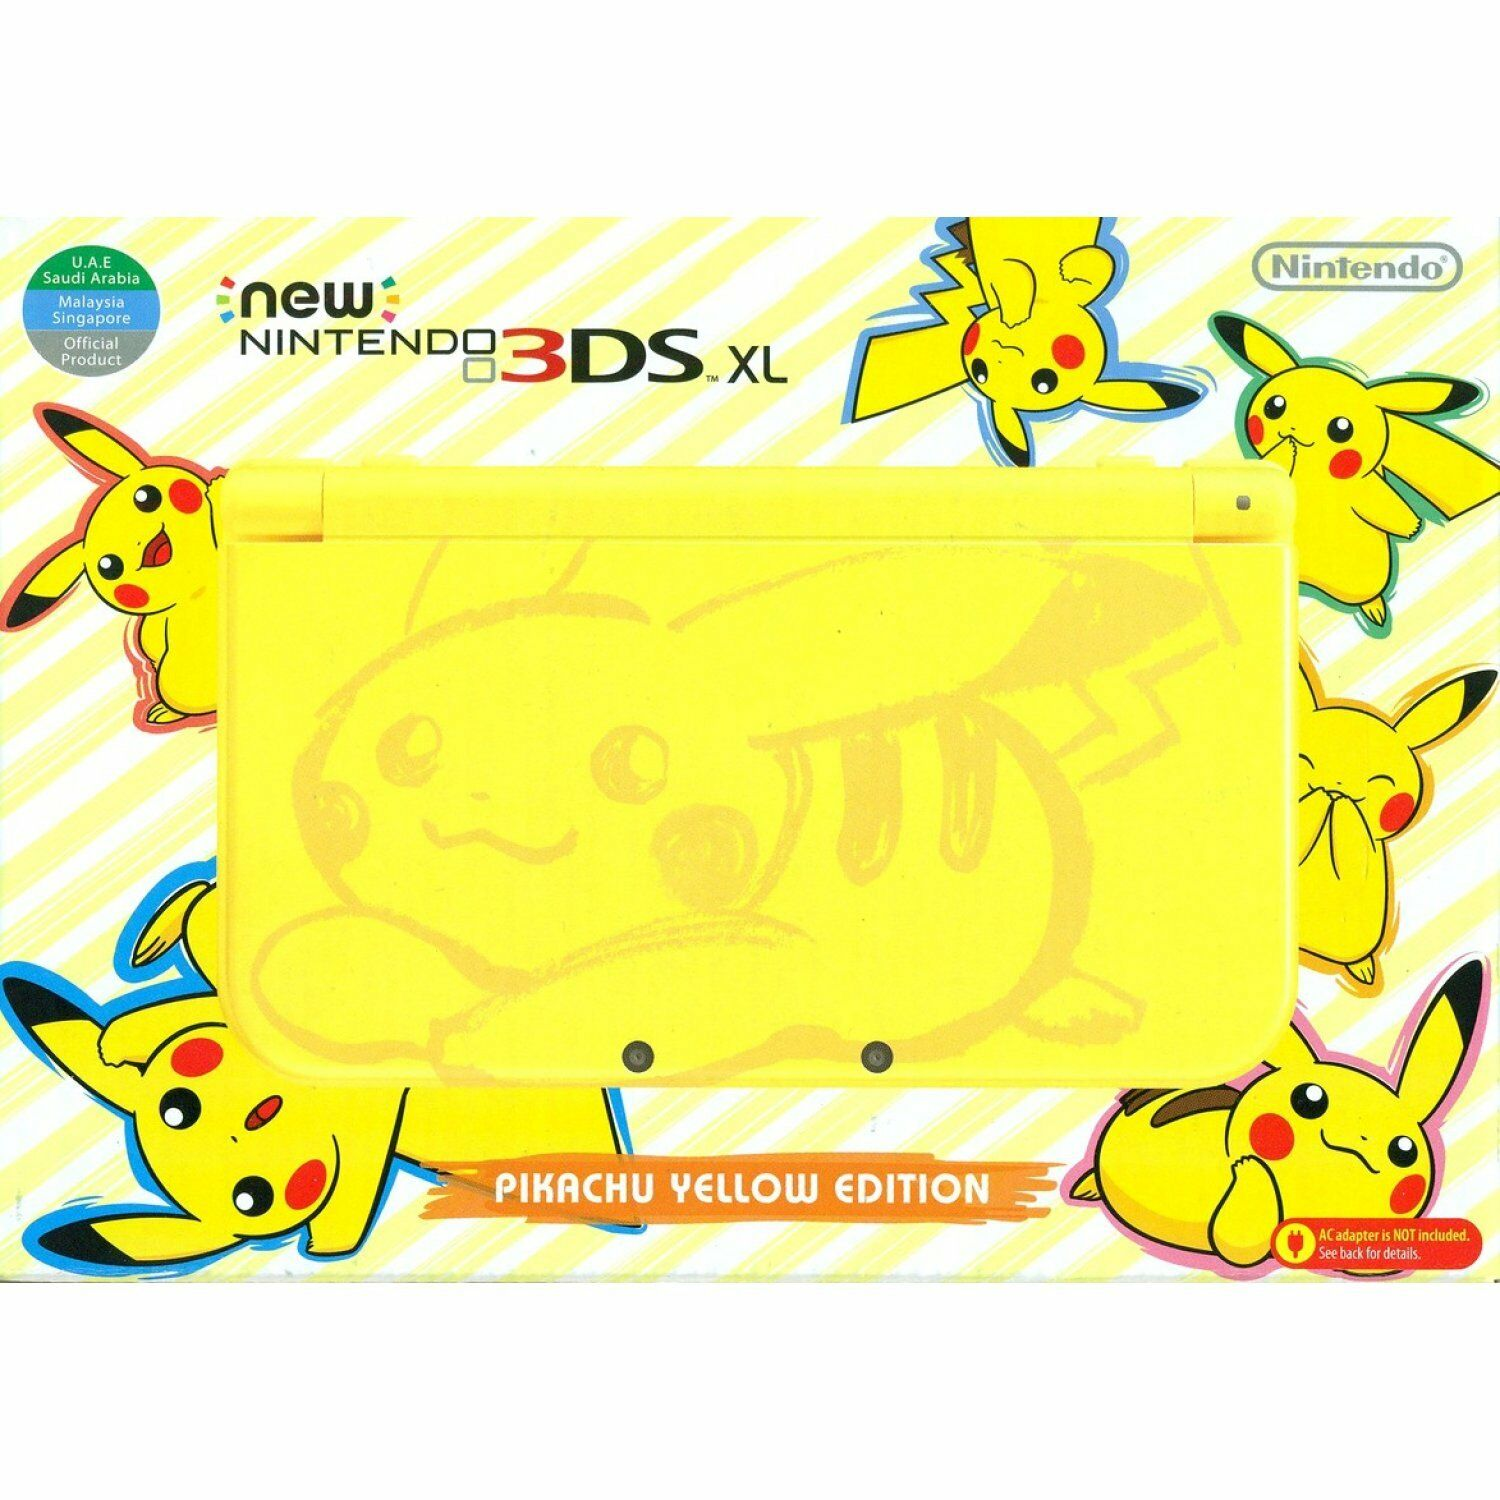 New Nintendo 3DS XL - Pikachu Edition - Plays all USA games